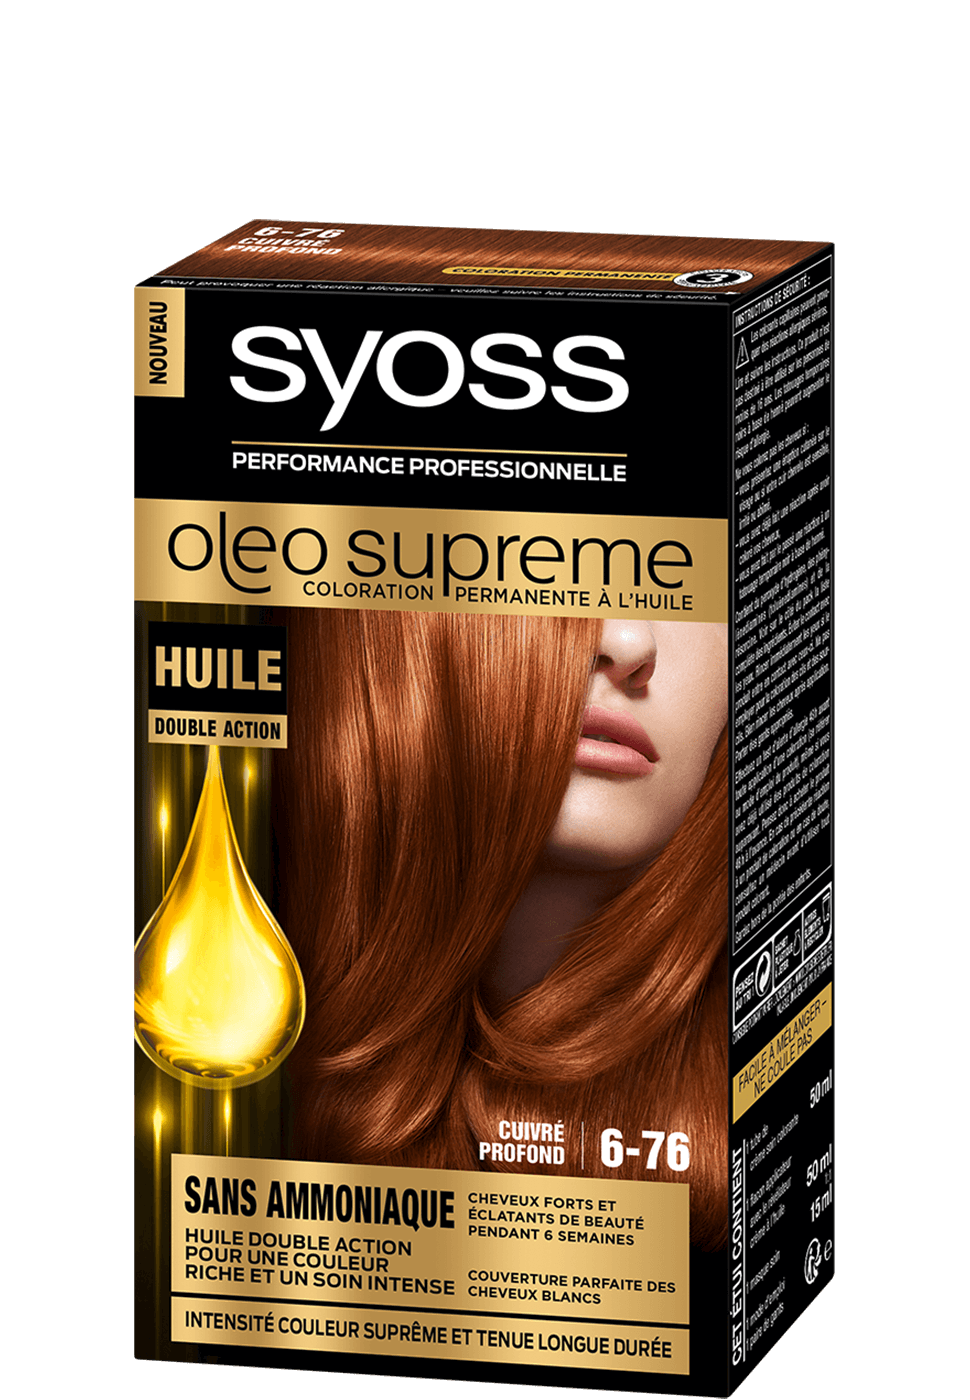 syoss_fr_oleo_supreme_6_76_cuivre_profond_970x1400